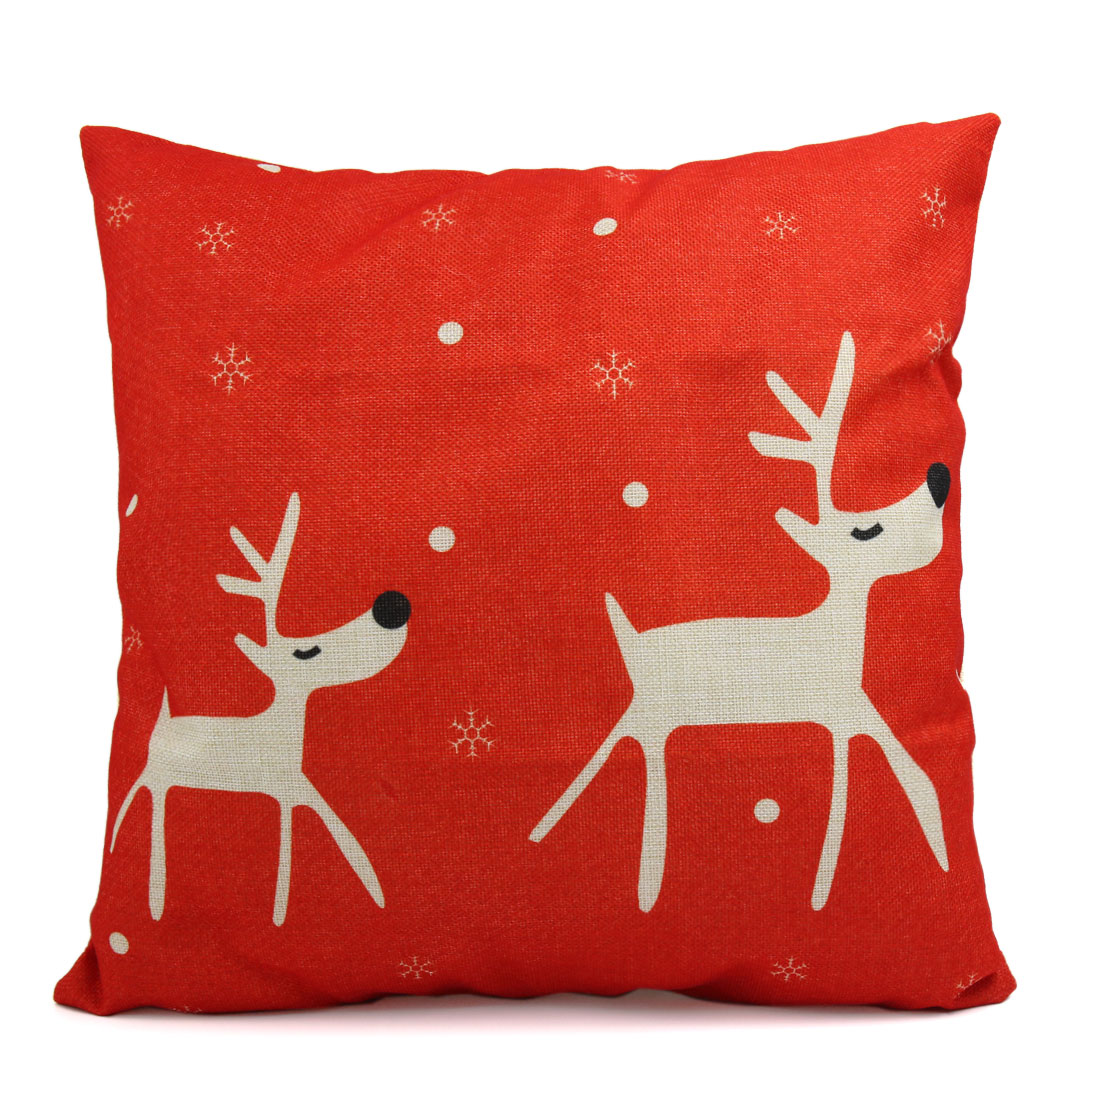 Square Shape Linen Two Deer Printed Sofa Car Throw Cushion Pillow Cover - image 1 of 3